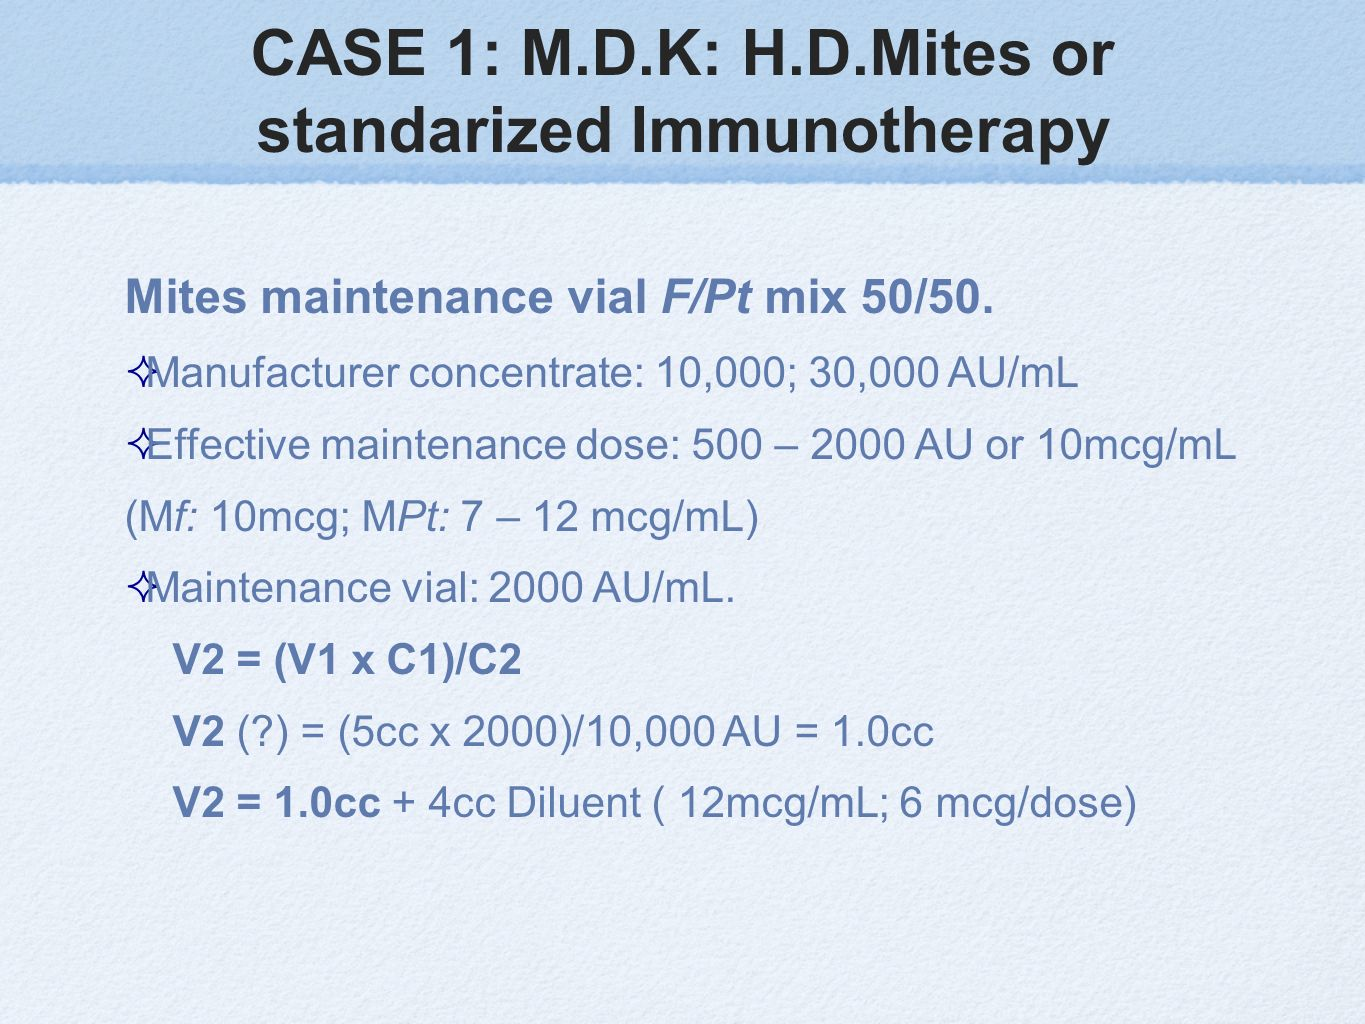 CASE 1: M.D.K: H.D.Mites or standarized Immunotherapy